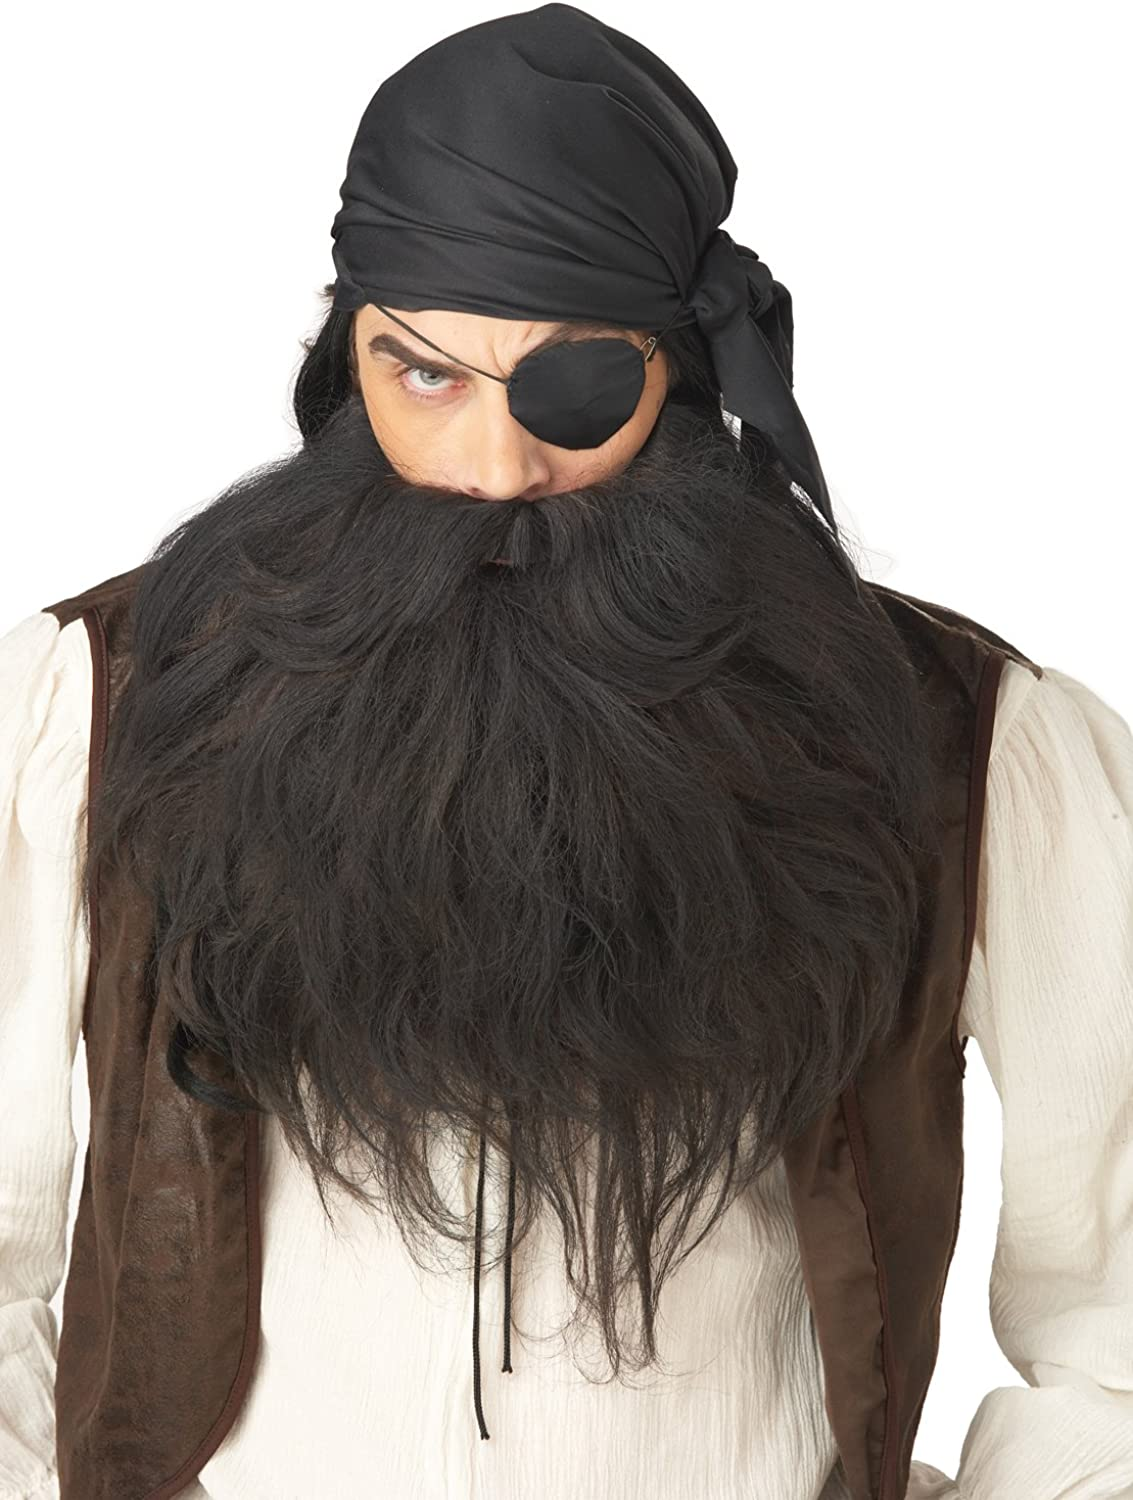 BAD BIKER BLACK BEARD /& MOUSTACHE FACIAL HAIR MUSTACHE HALLOWEEN ACCESSORY